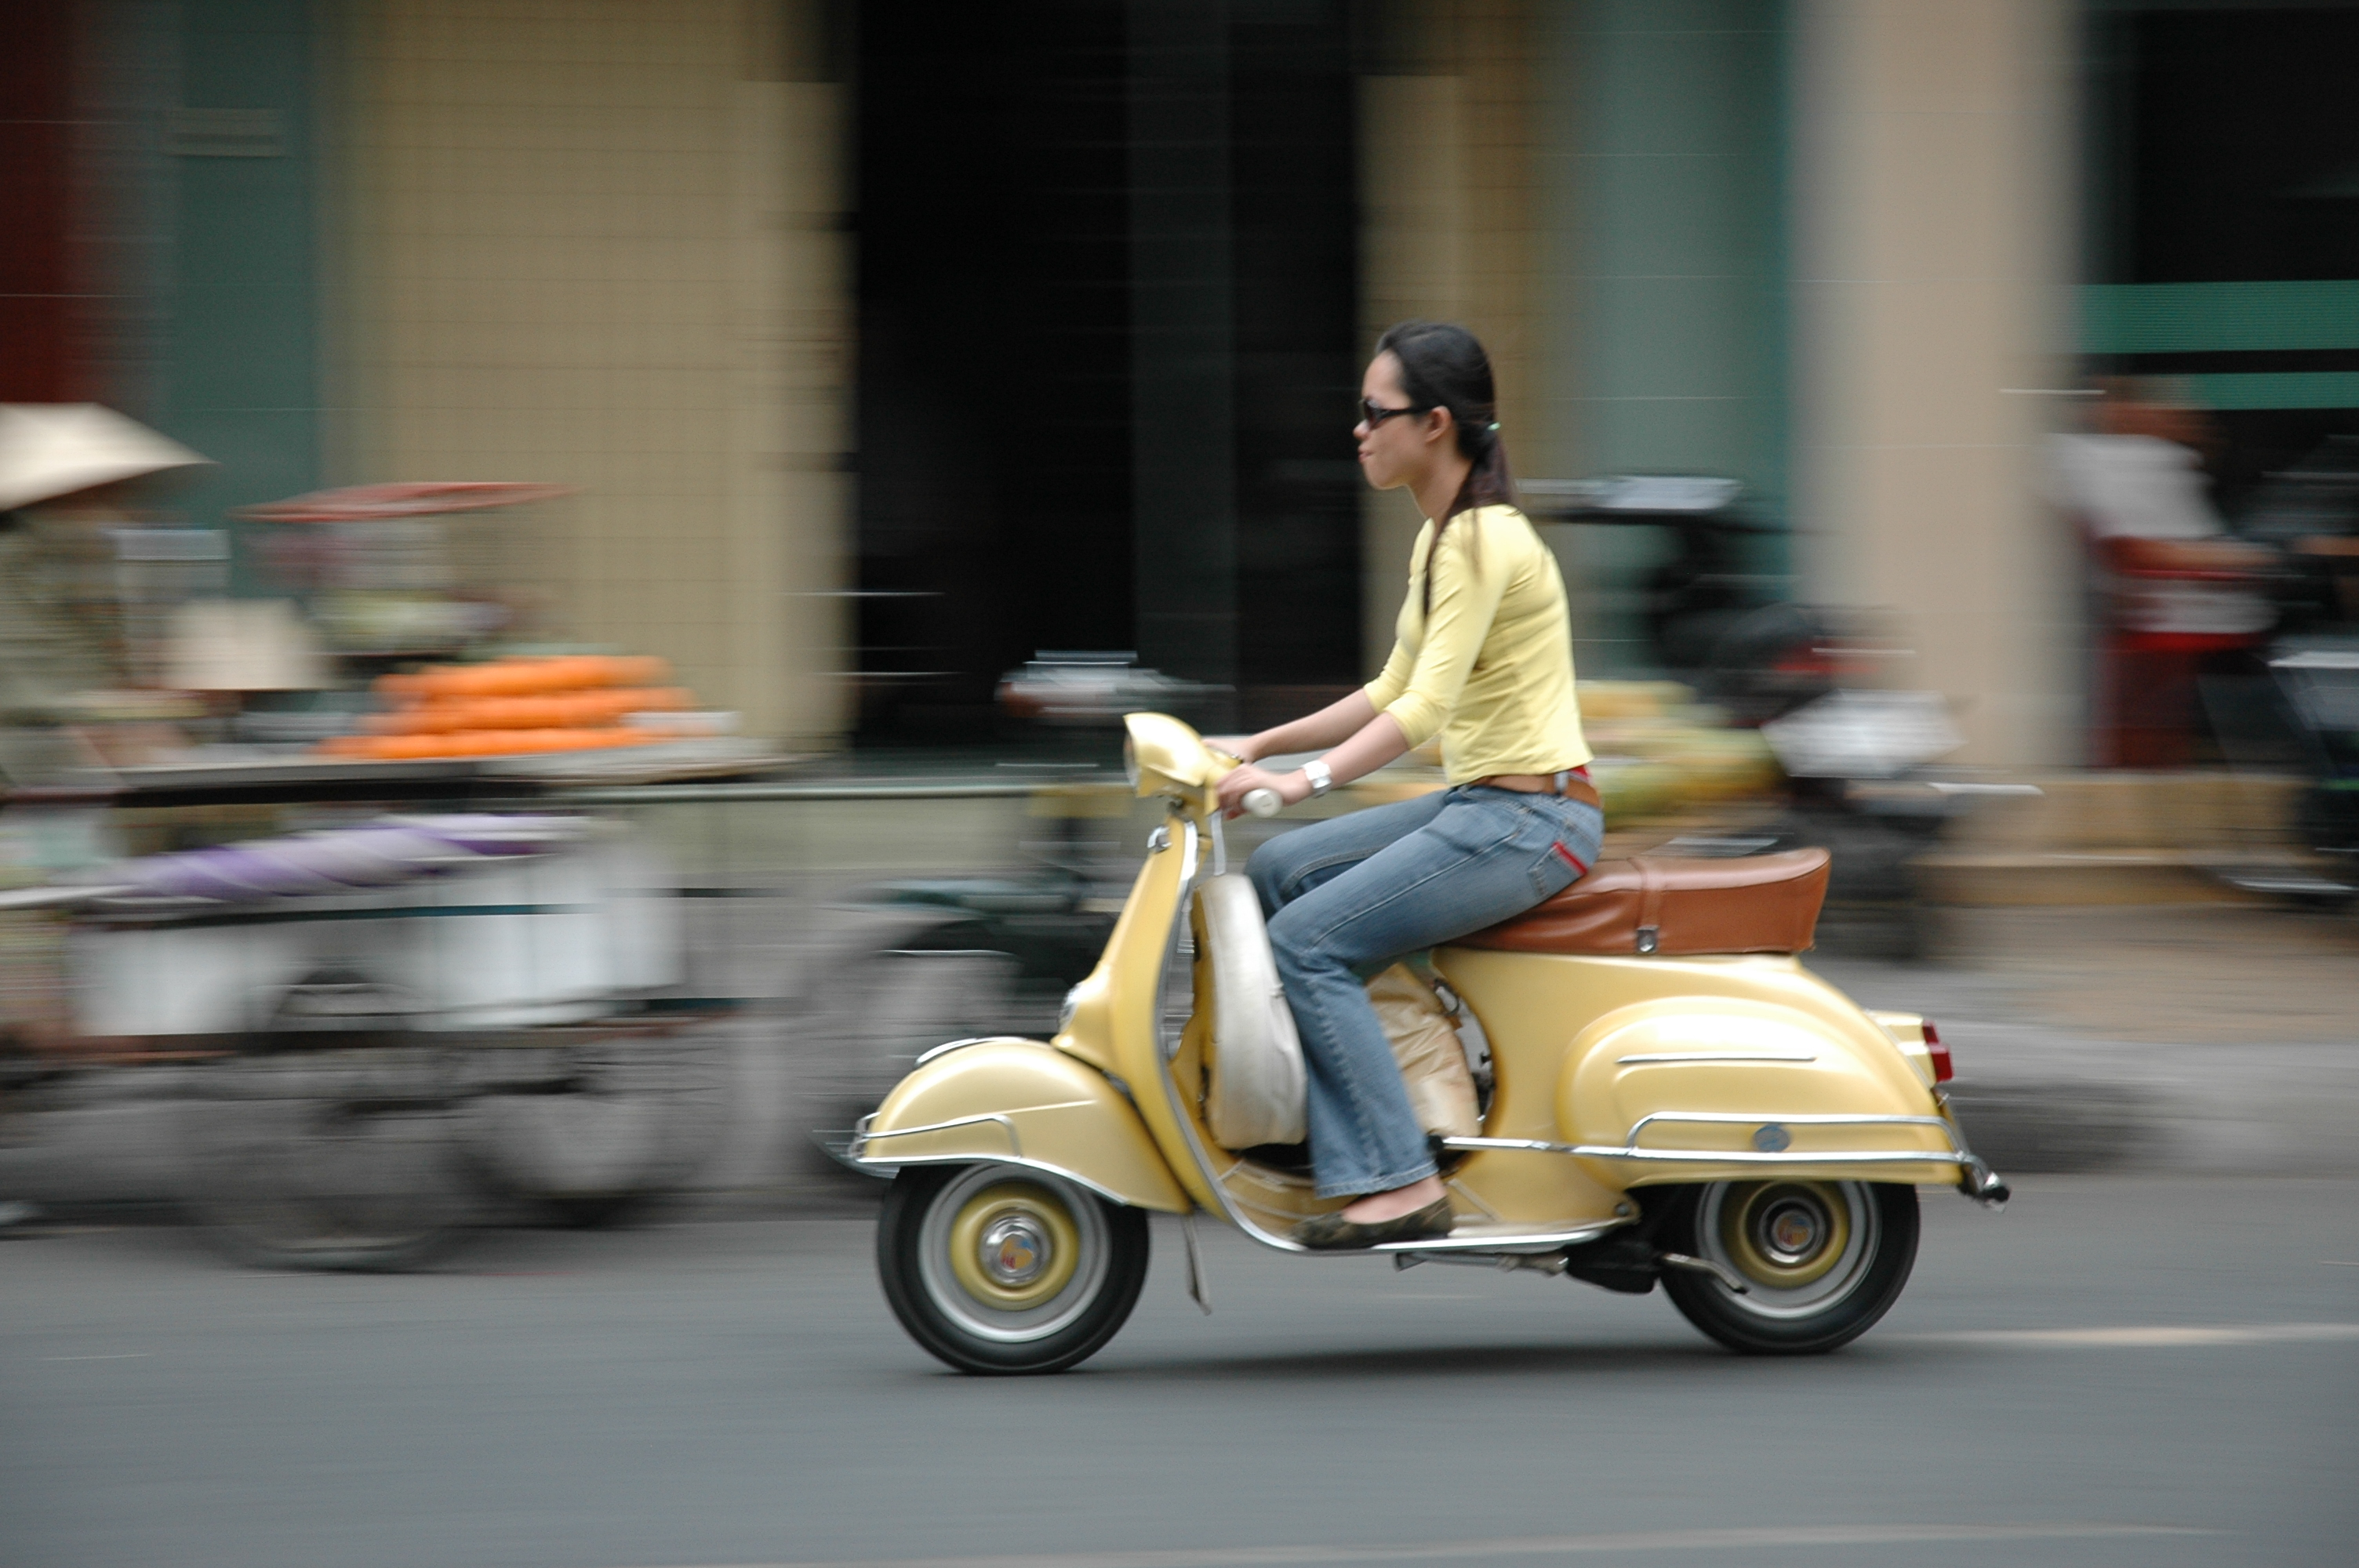 FileWoman On Motor Scooter In Vietnam